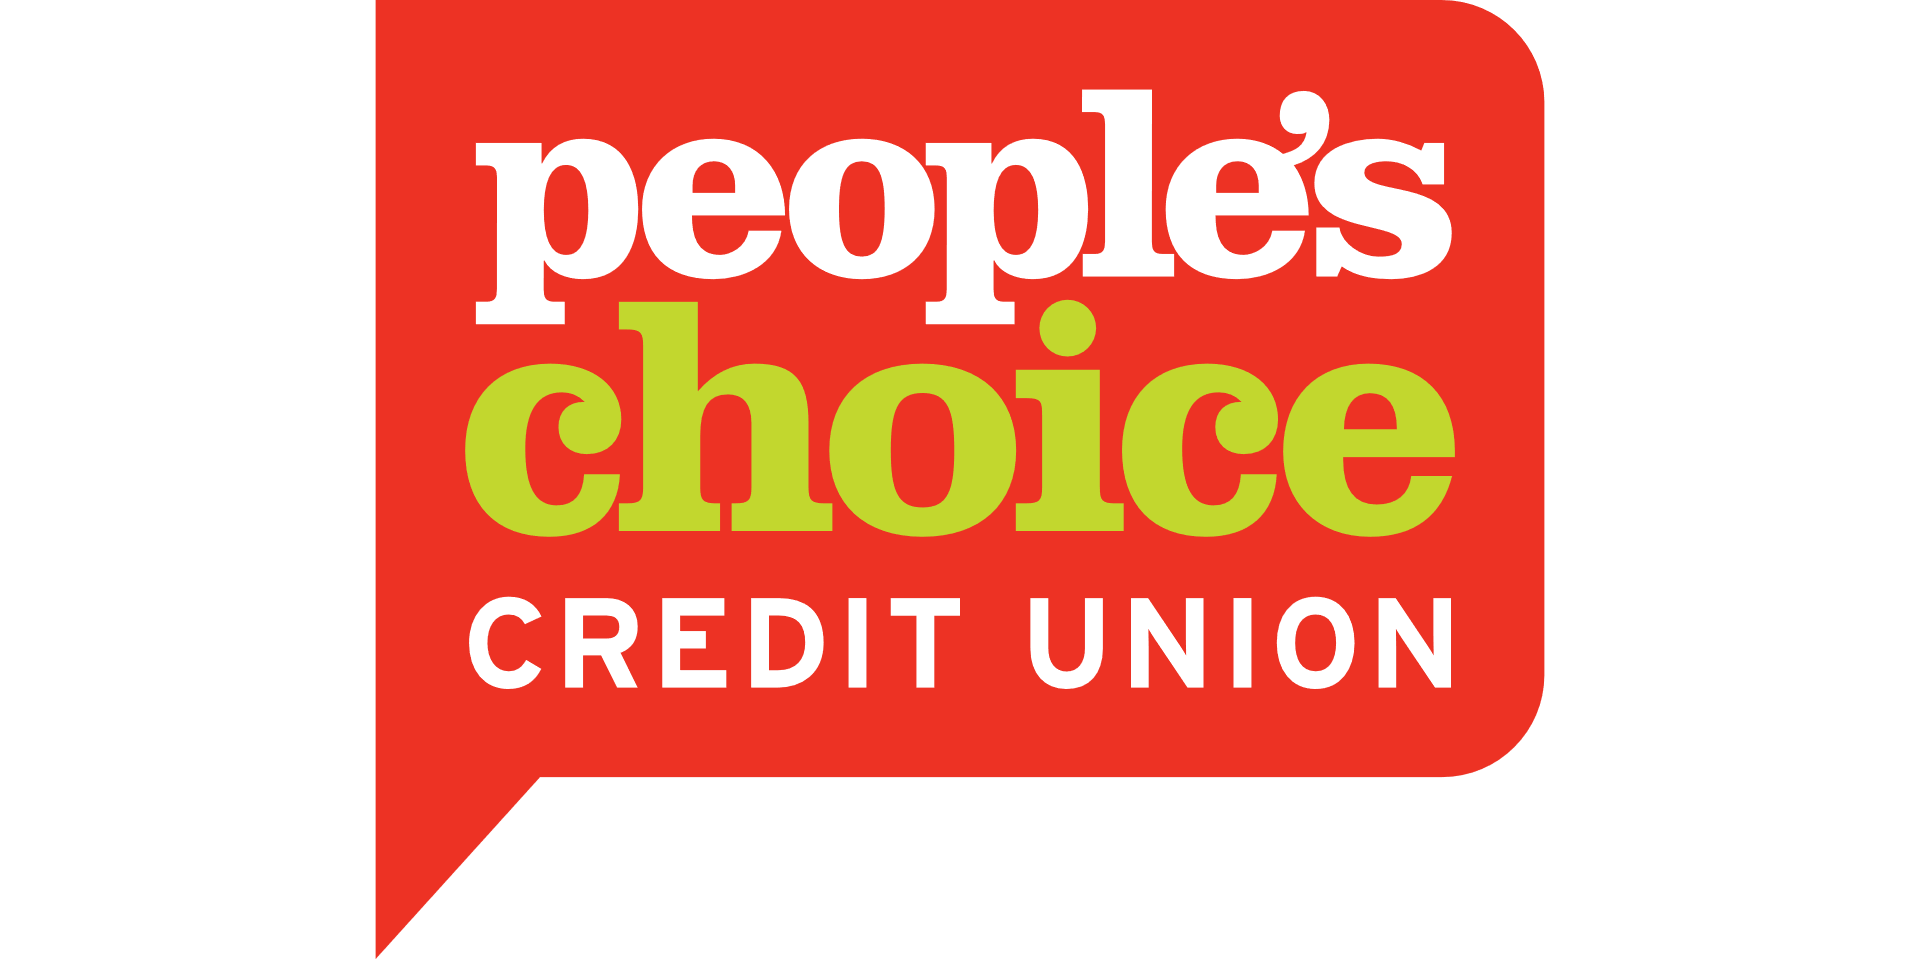 People's Choice Credit Union - Port Pirie, SA 5540 - (01) 3118 1182 | ShowMeLocal.com